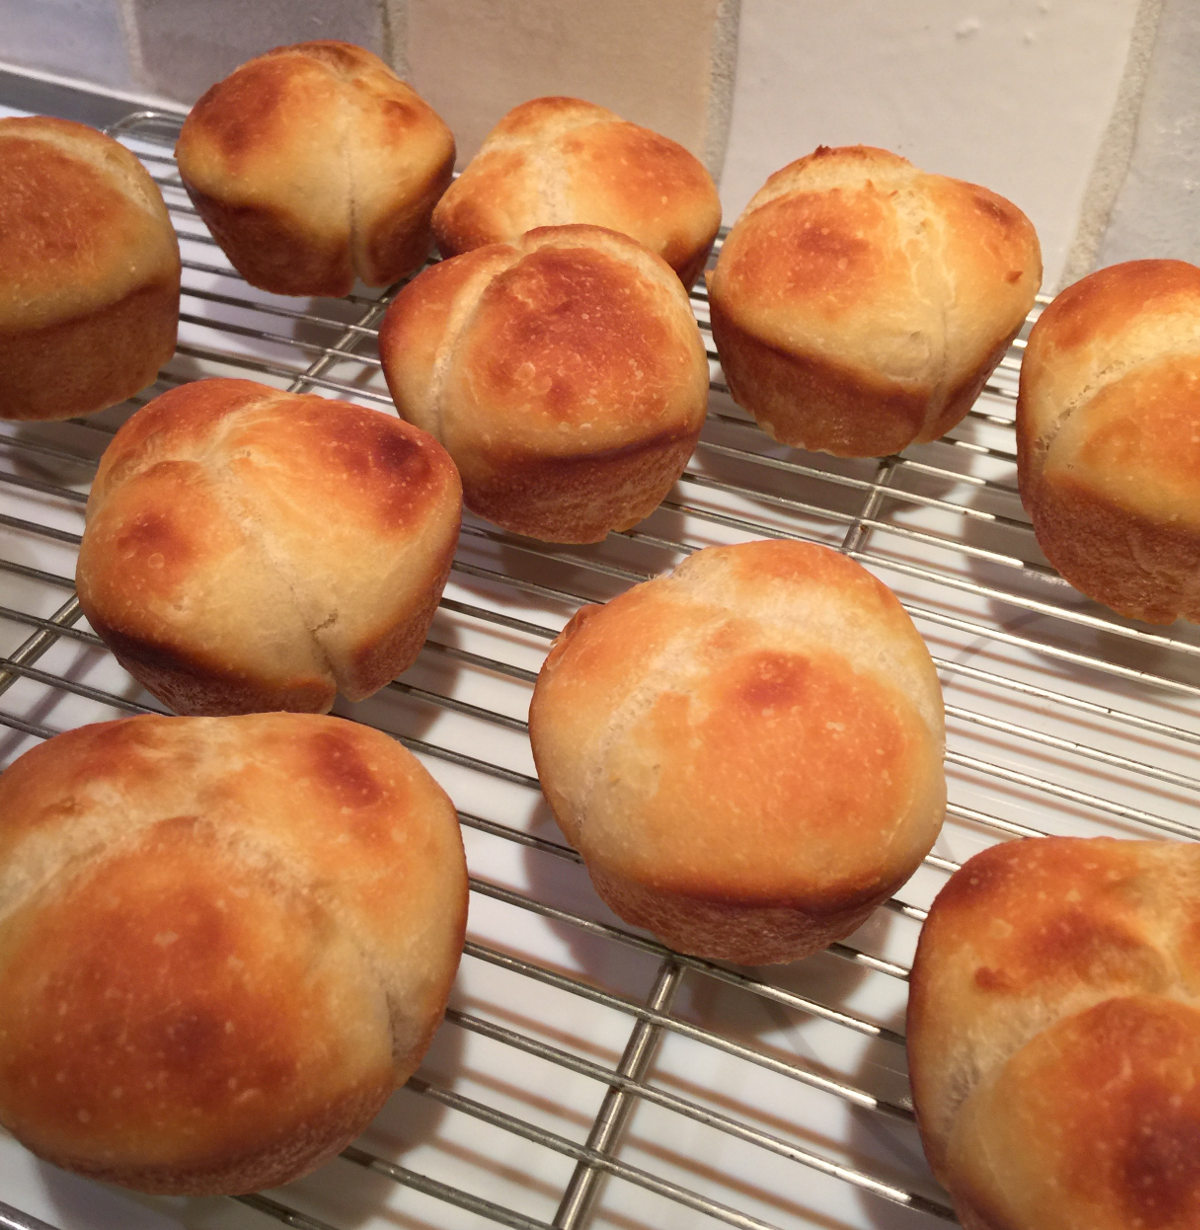 buttermilk cloverleaf rolls - baked rolls cooling on a rack - Atticmag.com